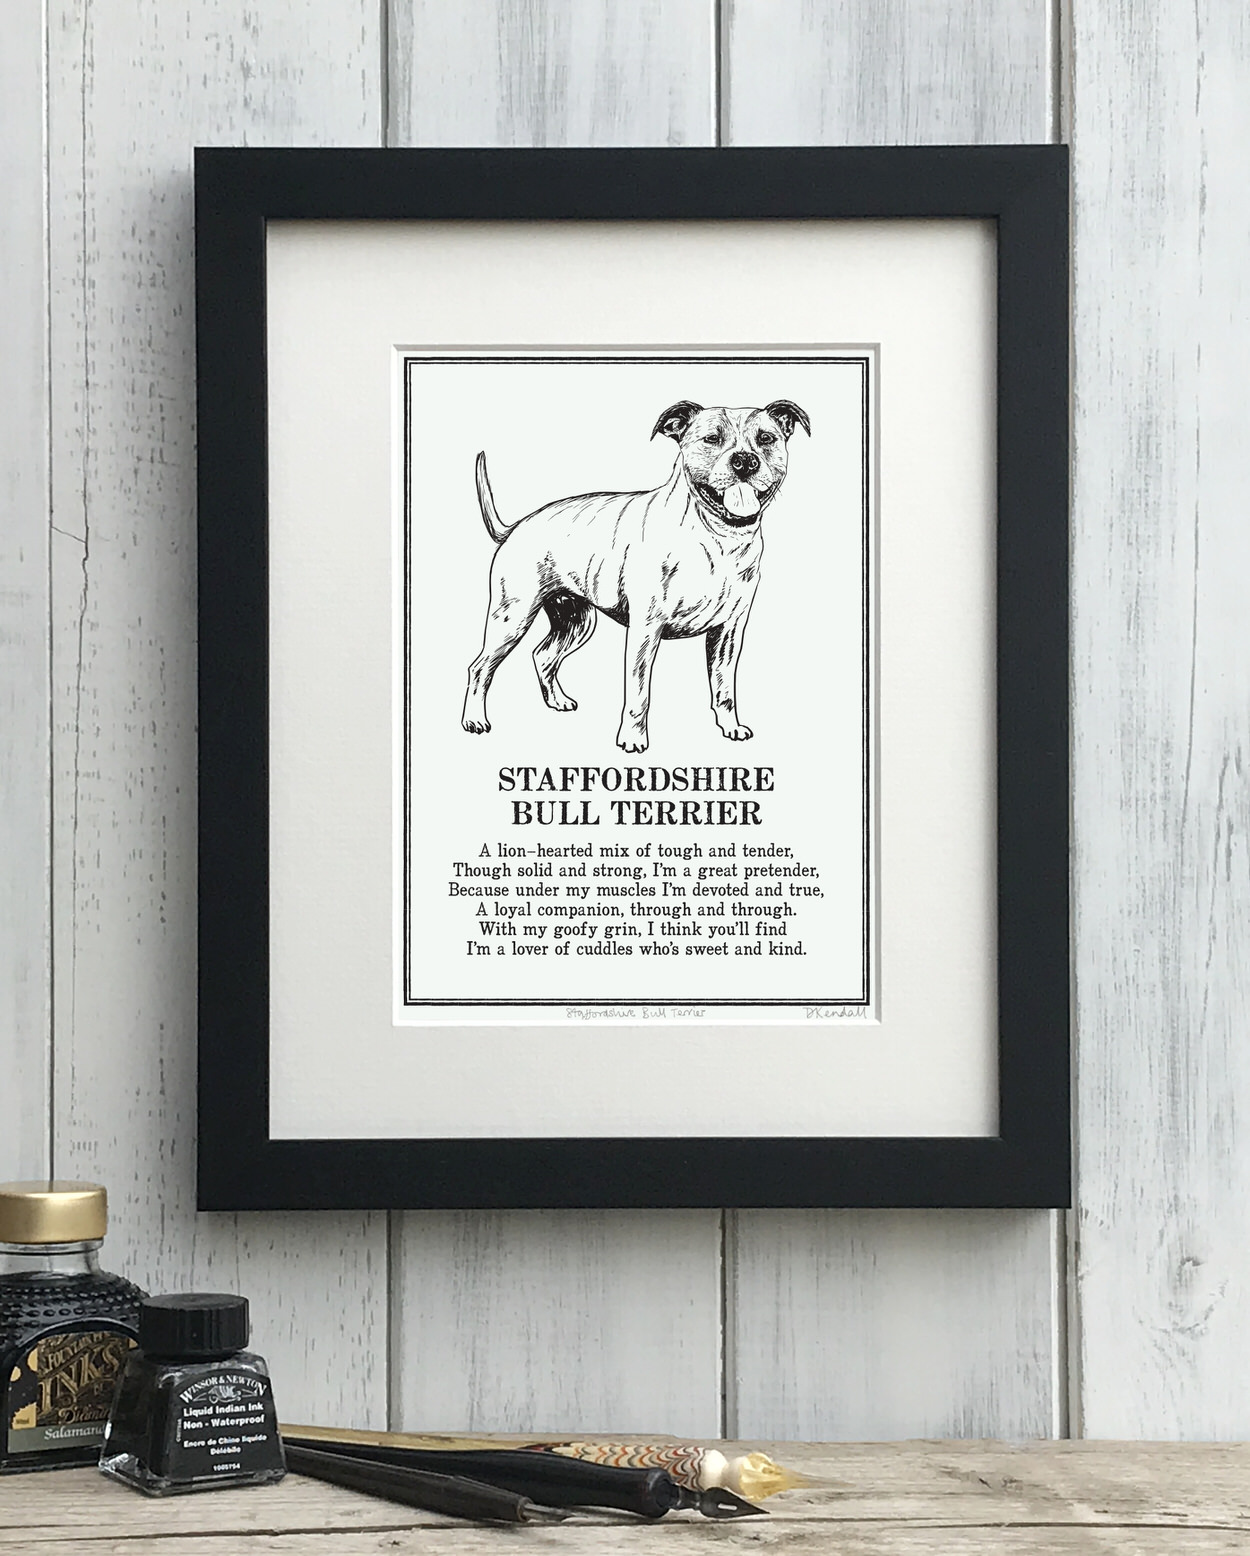 Staffordshire Bull Terrier dog print illustrated poem by The Enlightened Hound